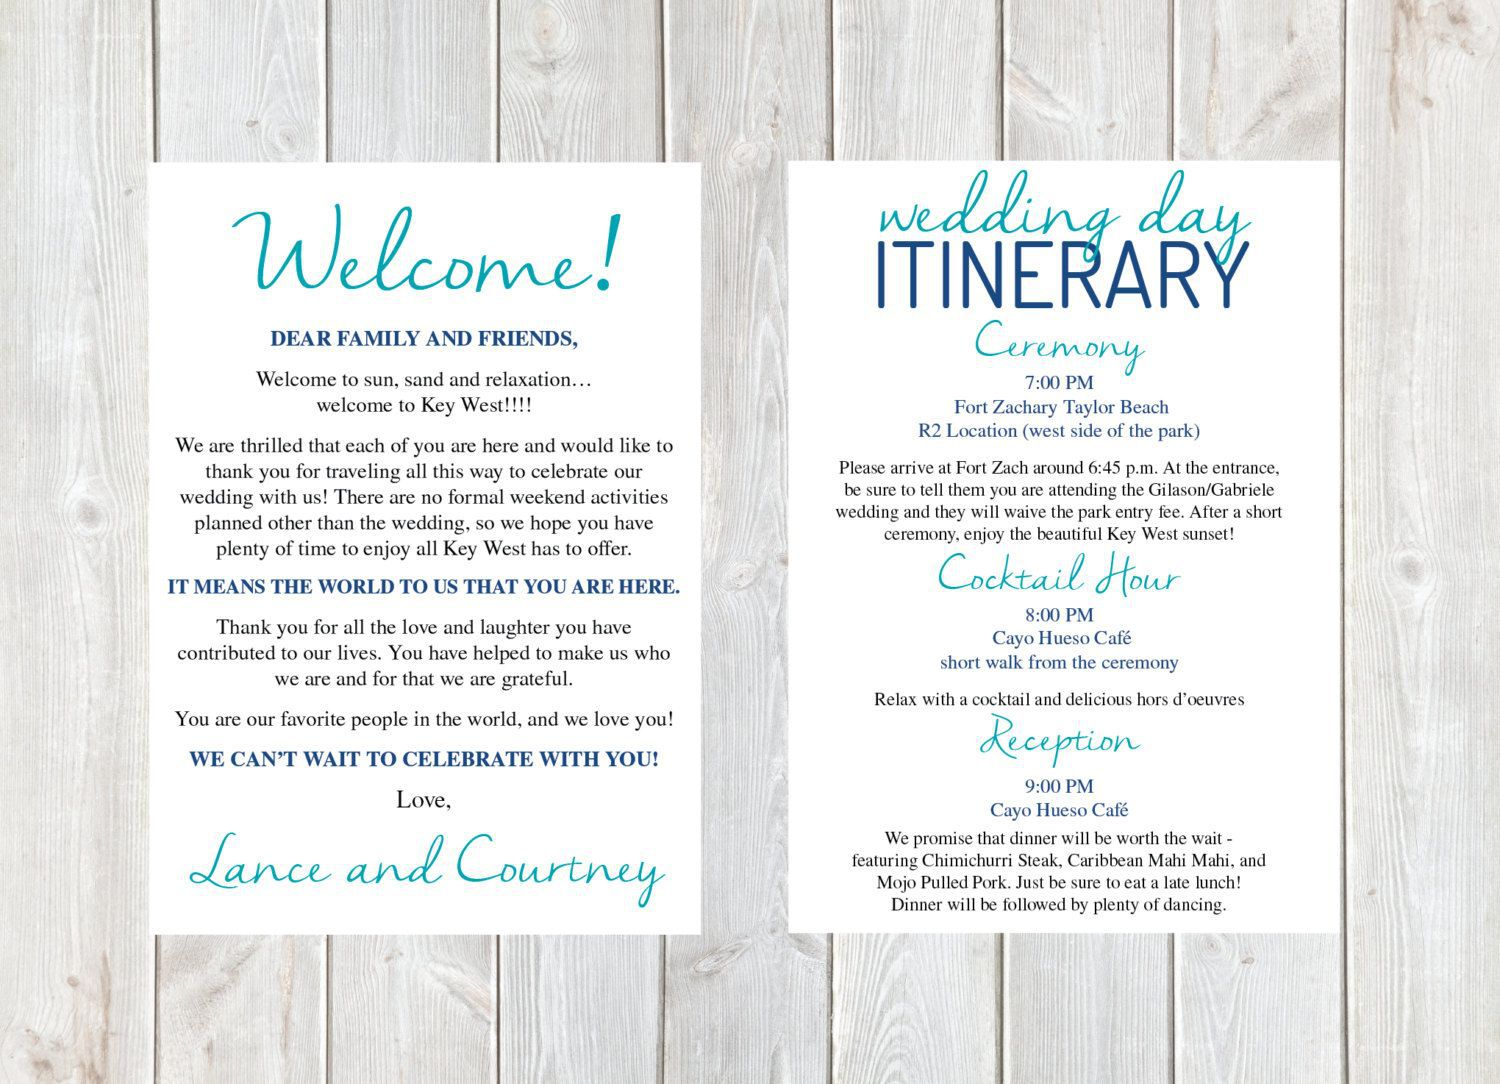 001 Rare Wedding Hotel Welcome Letter Template Highest Clarity Full